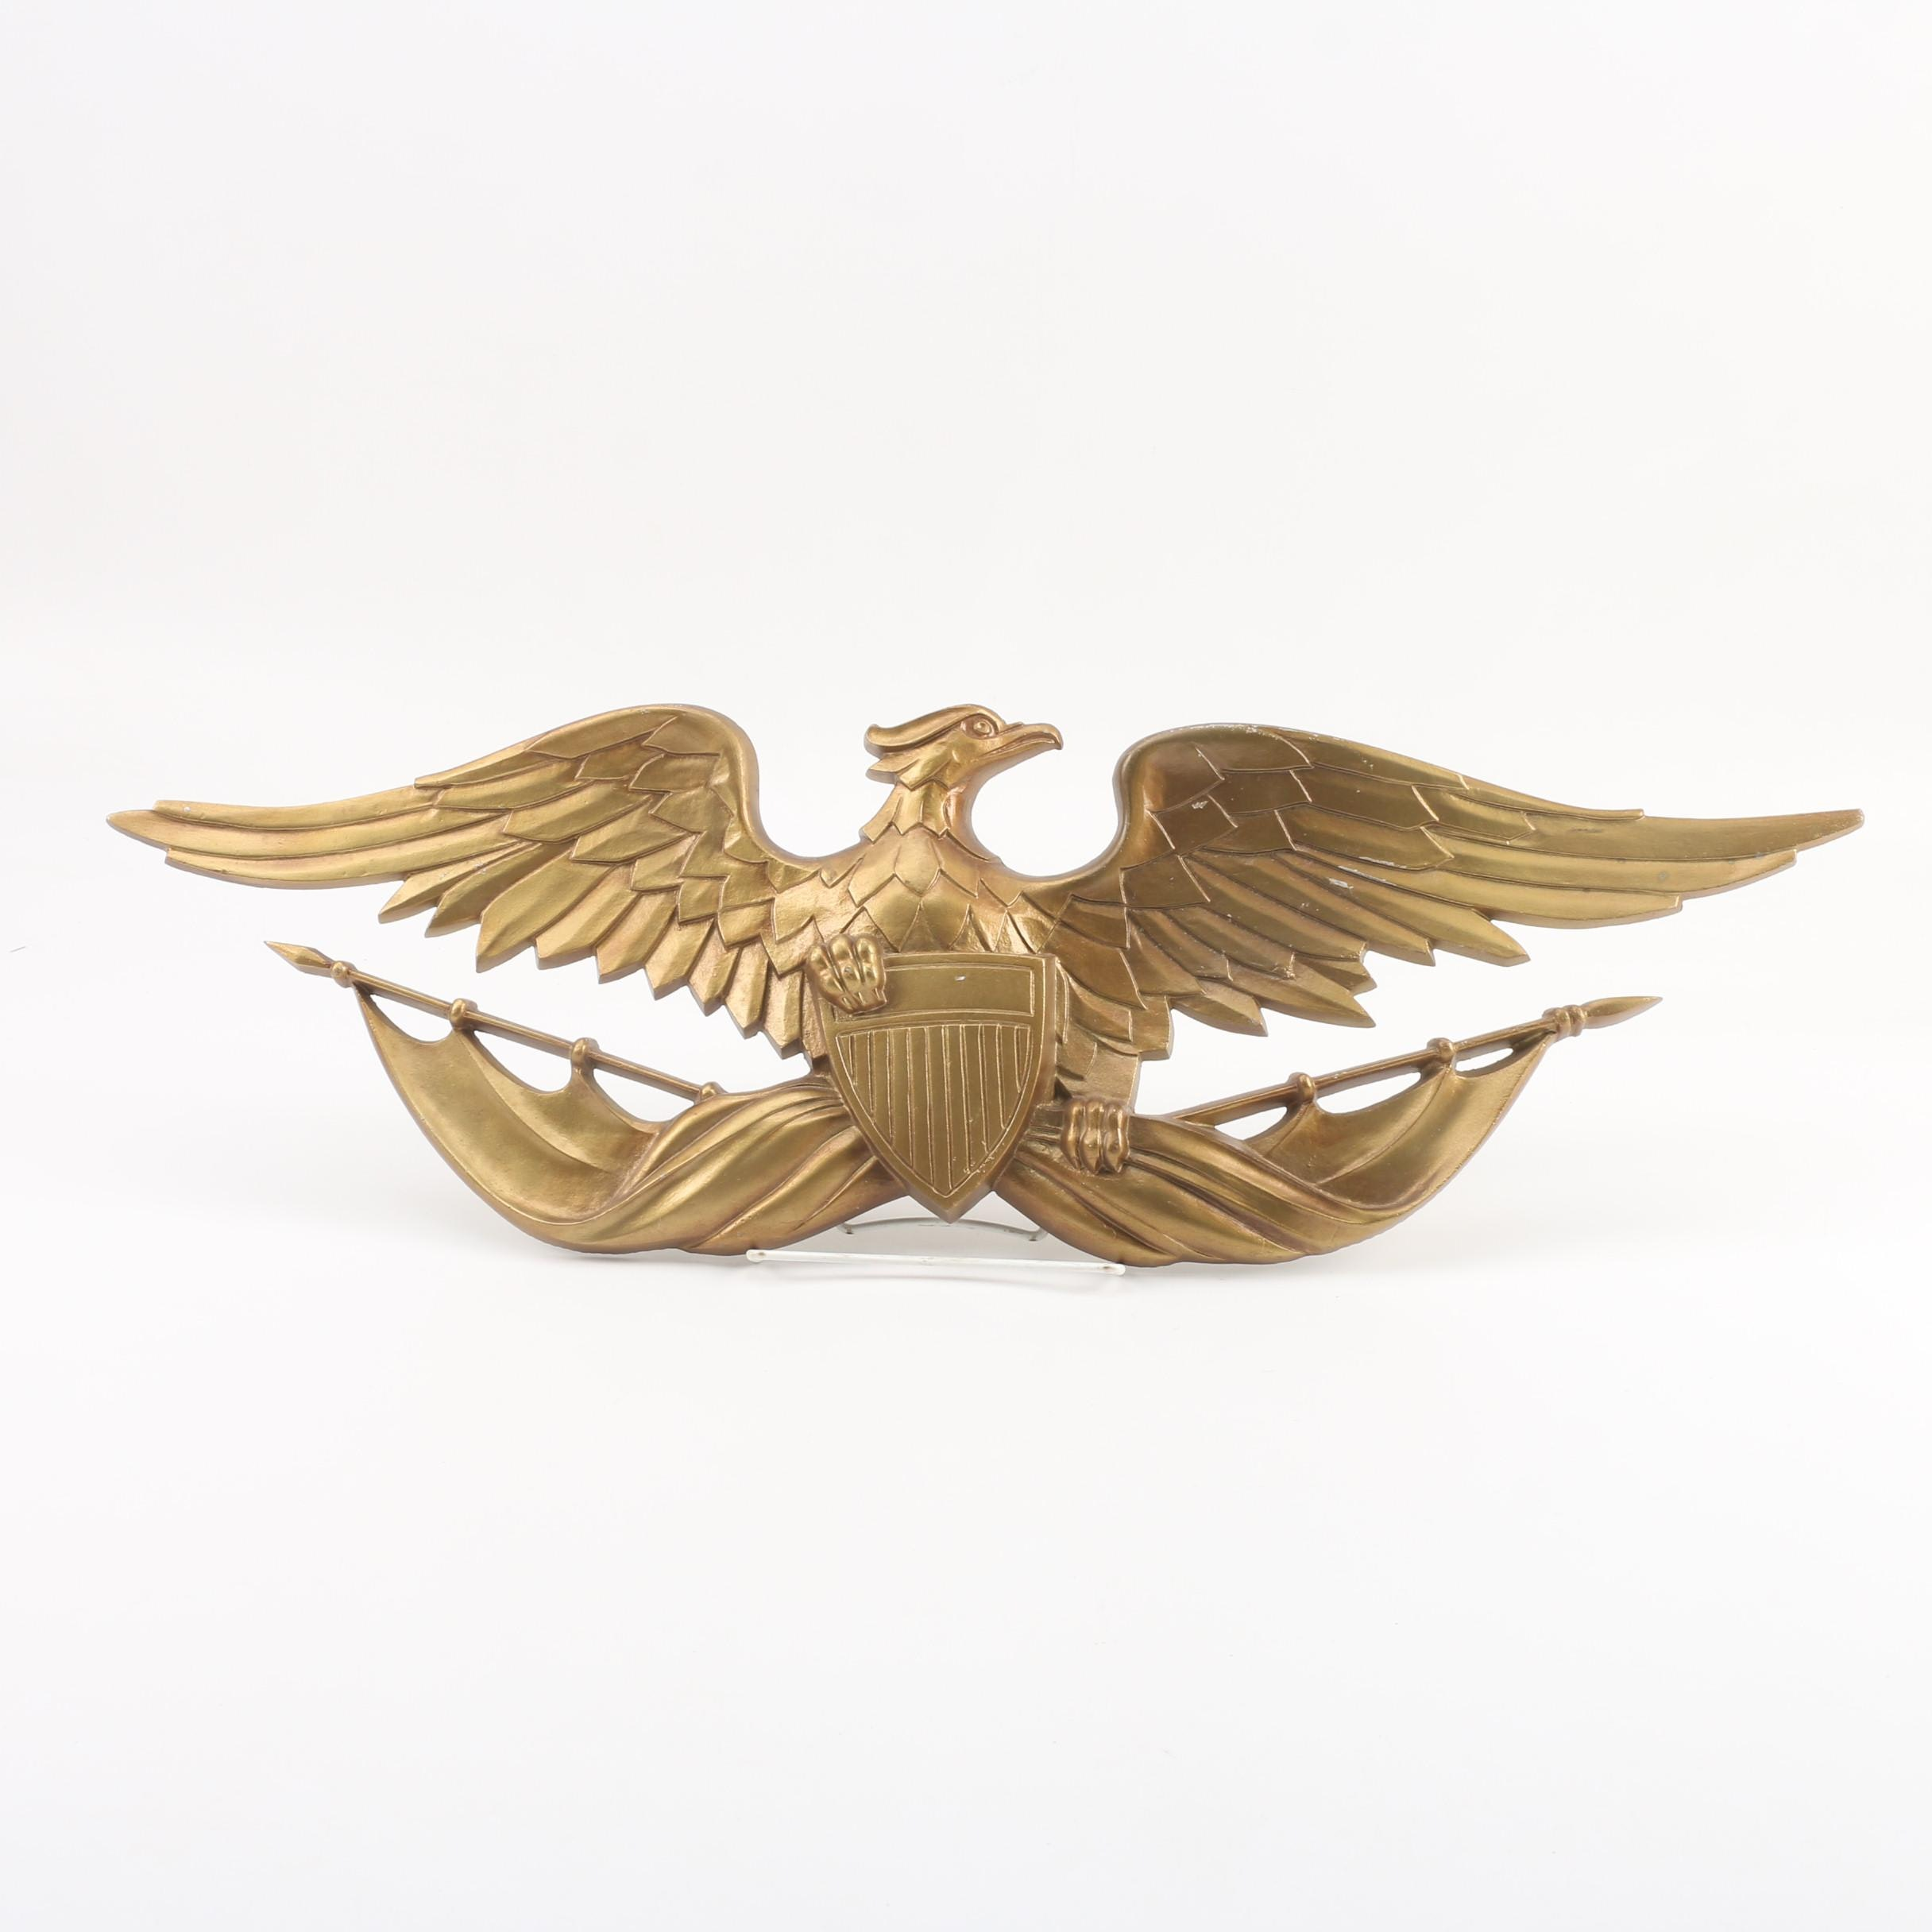 Sexton Cast Metal Eagle with Shield and Flags Wall Plaque